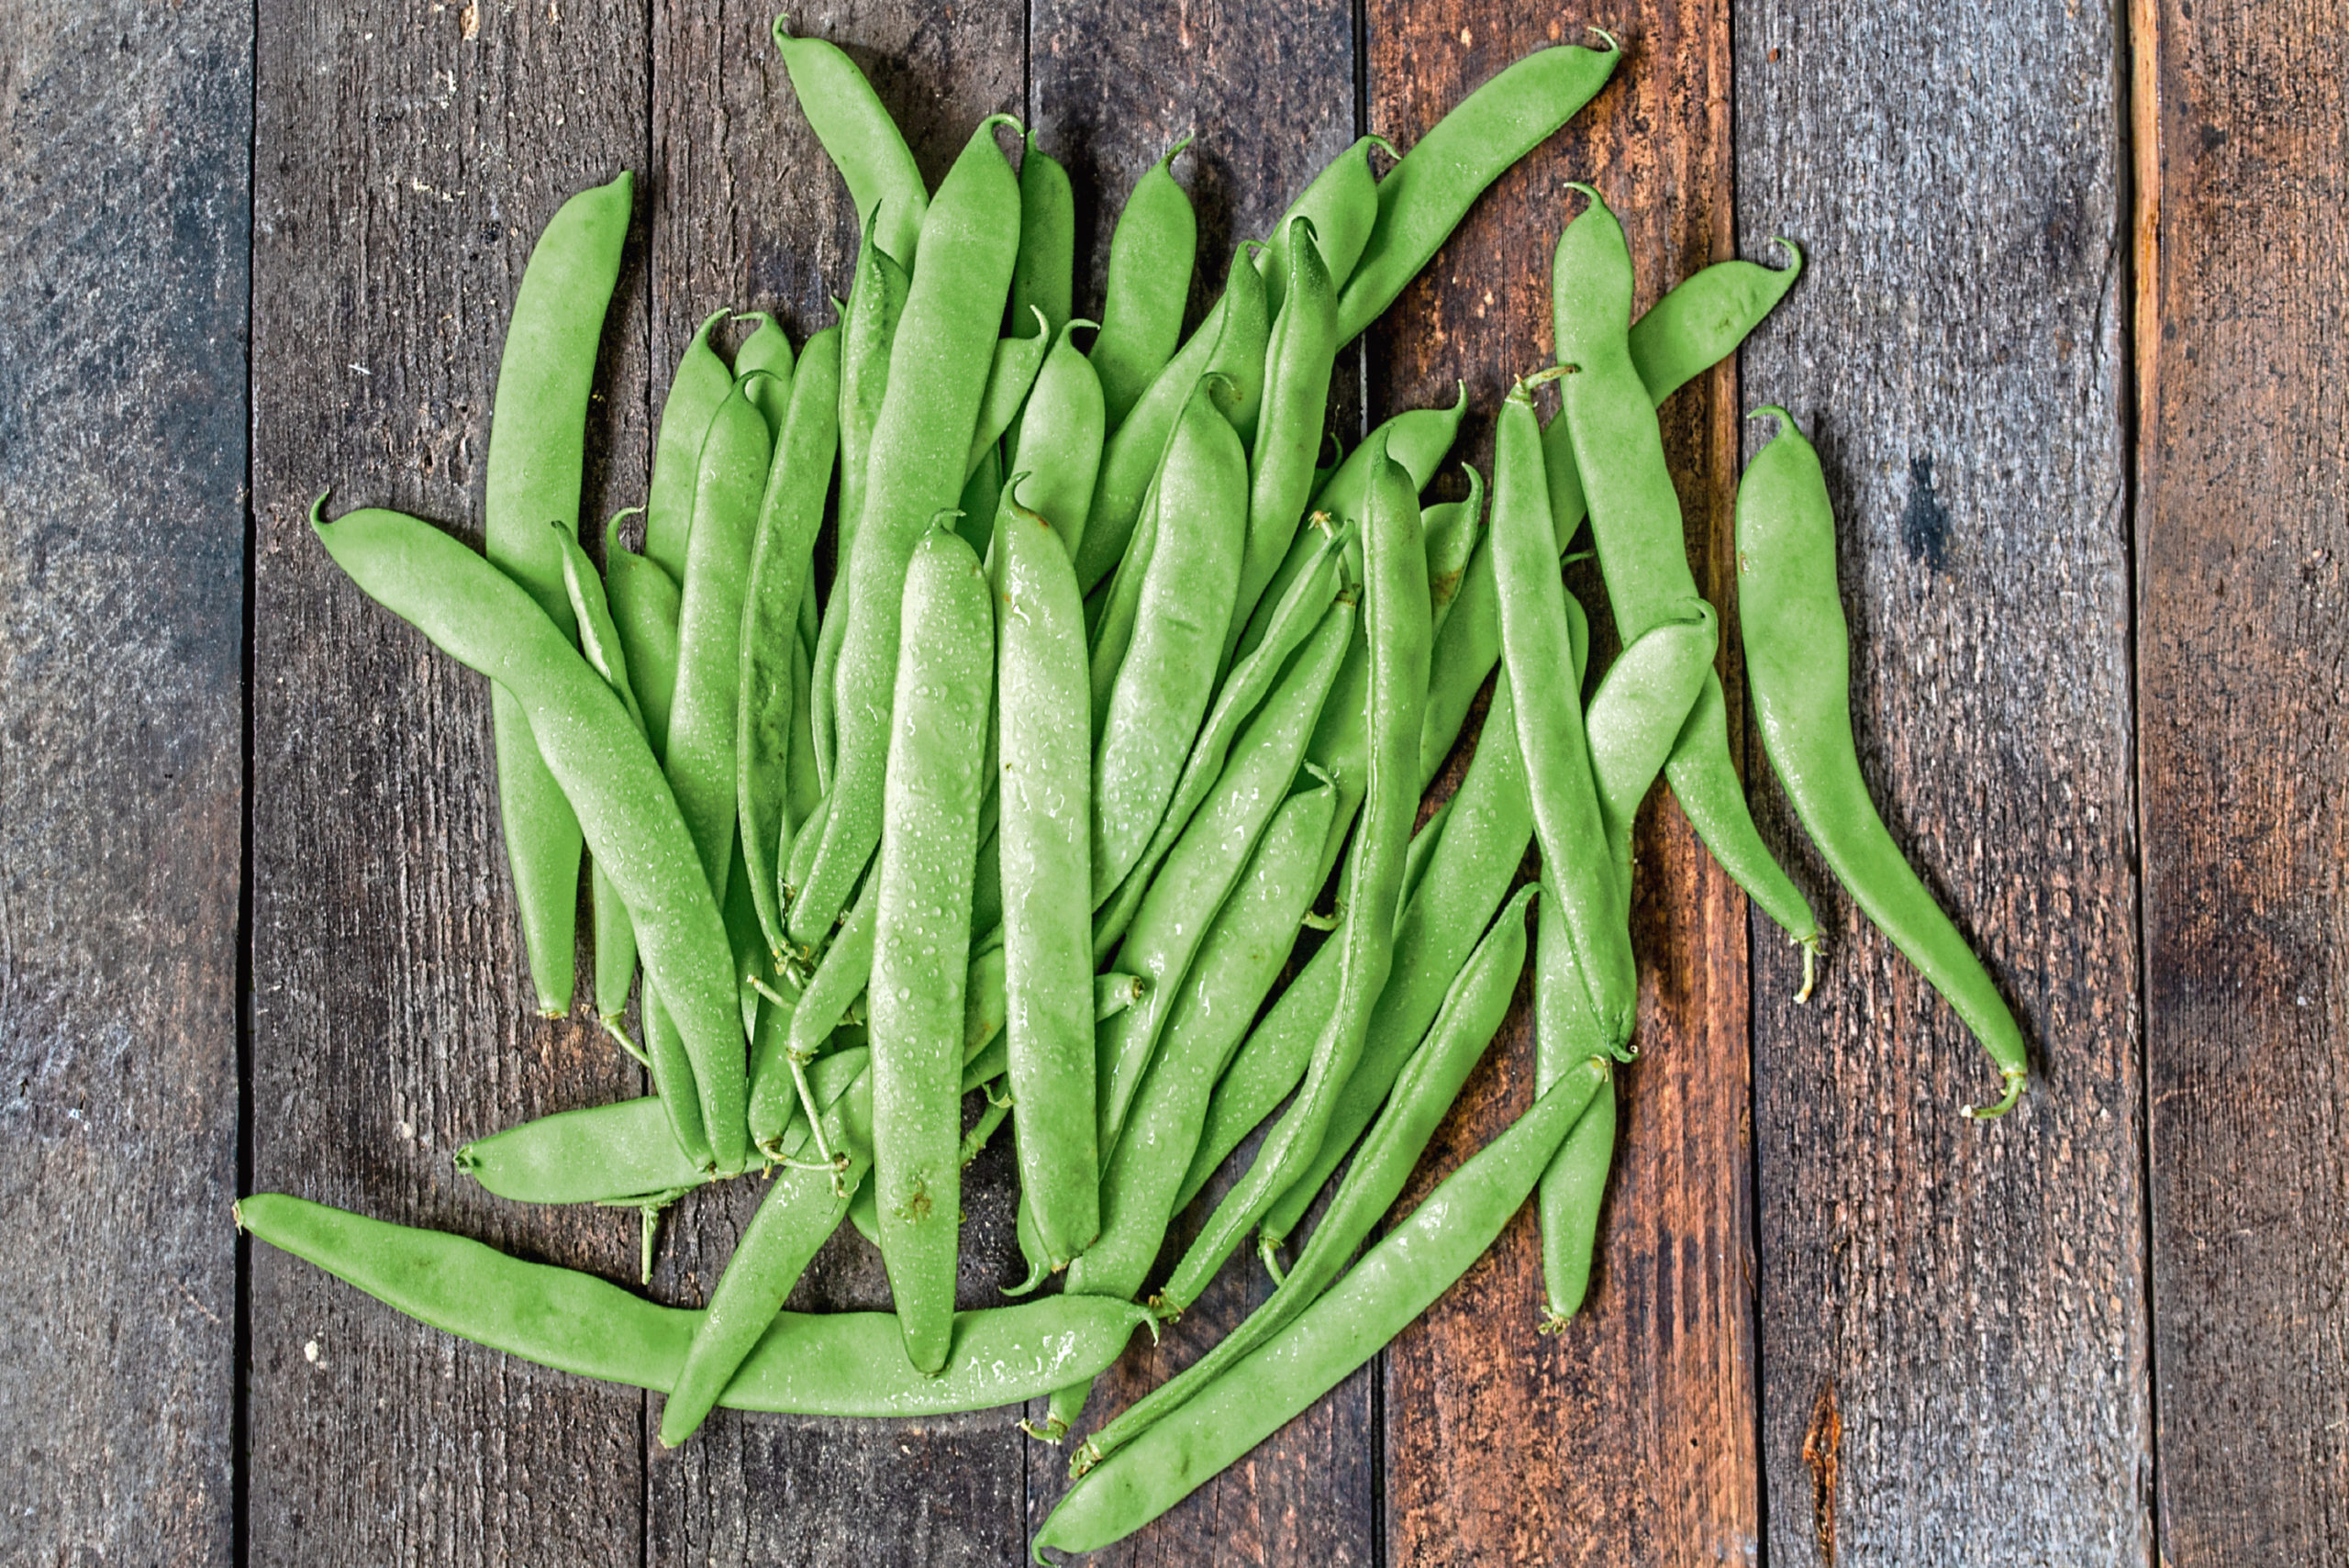 Pick runner beans before they begin to swell